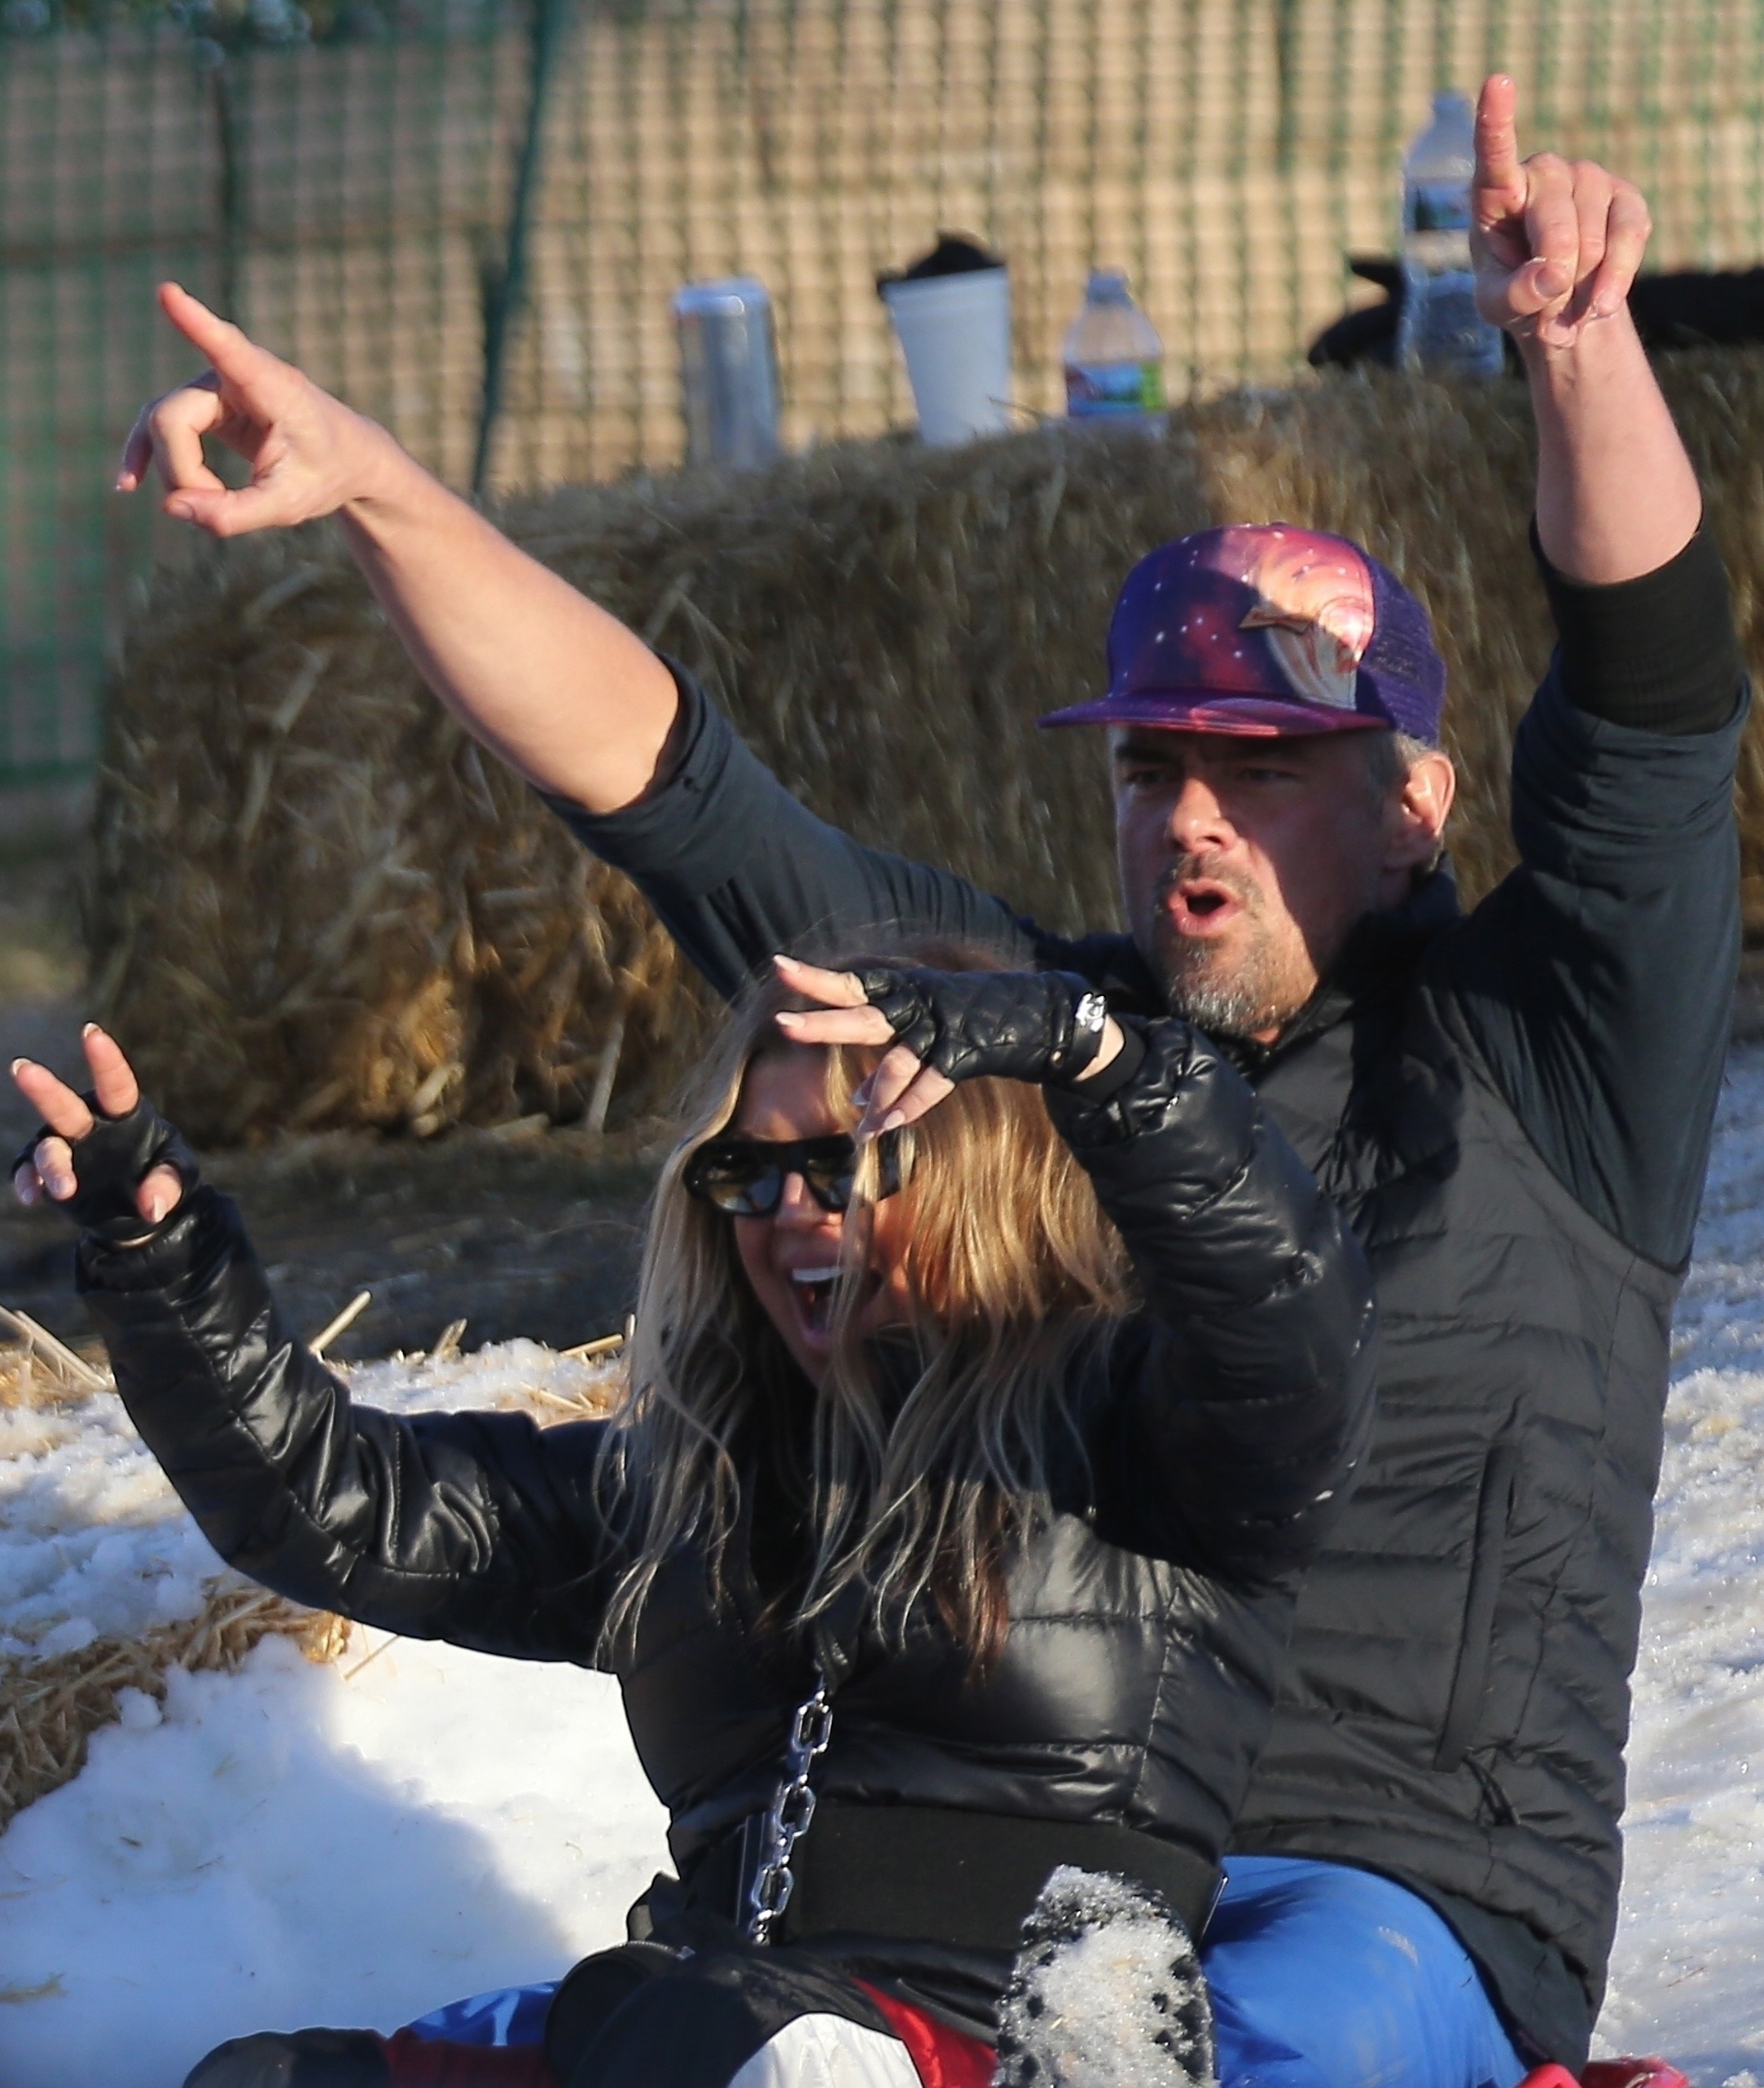 Fergie and Josh Duhamel went sledding at their son Axl's pre school in Los Angeles, Calif., on Feb. 23, 2019.  Pictured: Fergie, Josh Duhamel!  BACKGRID USA 23 FEBRUARY 2019   BYLINE MUST READ: WAGO / BACKGRID  USA: +1 310 798 9111 / usasales@backgrid.com  UK: +44 208 344 2007 / uksales@backgrid.com  *UK Clients   Pictures Containing Children Please Pixelate Face Prior To Publication*